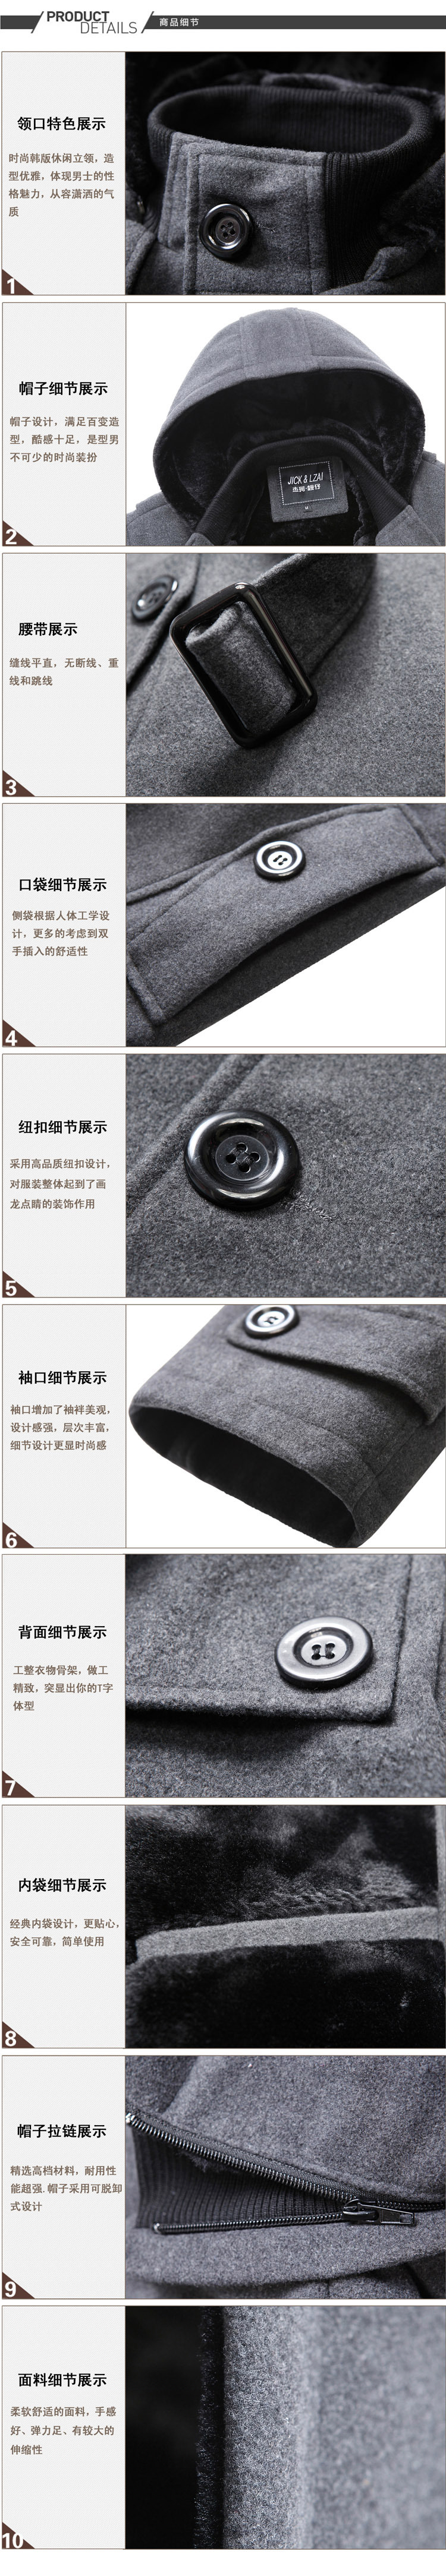 Military 18 New Winter Jacket Men Brand Clothing Male Down Coat High Quality Hot Selling Plus Sizes S M 4XL 7